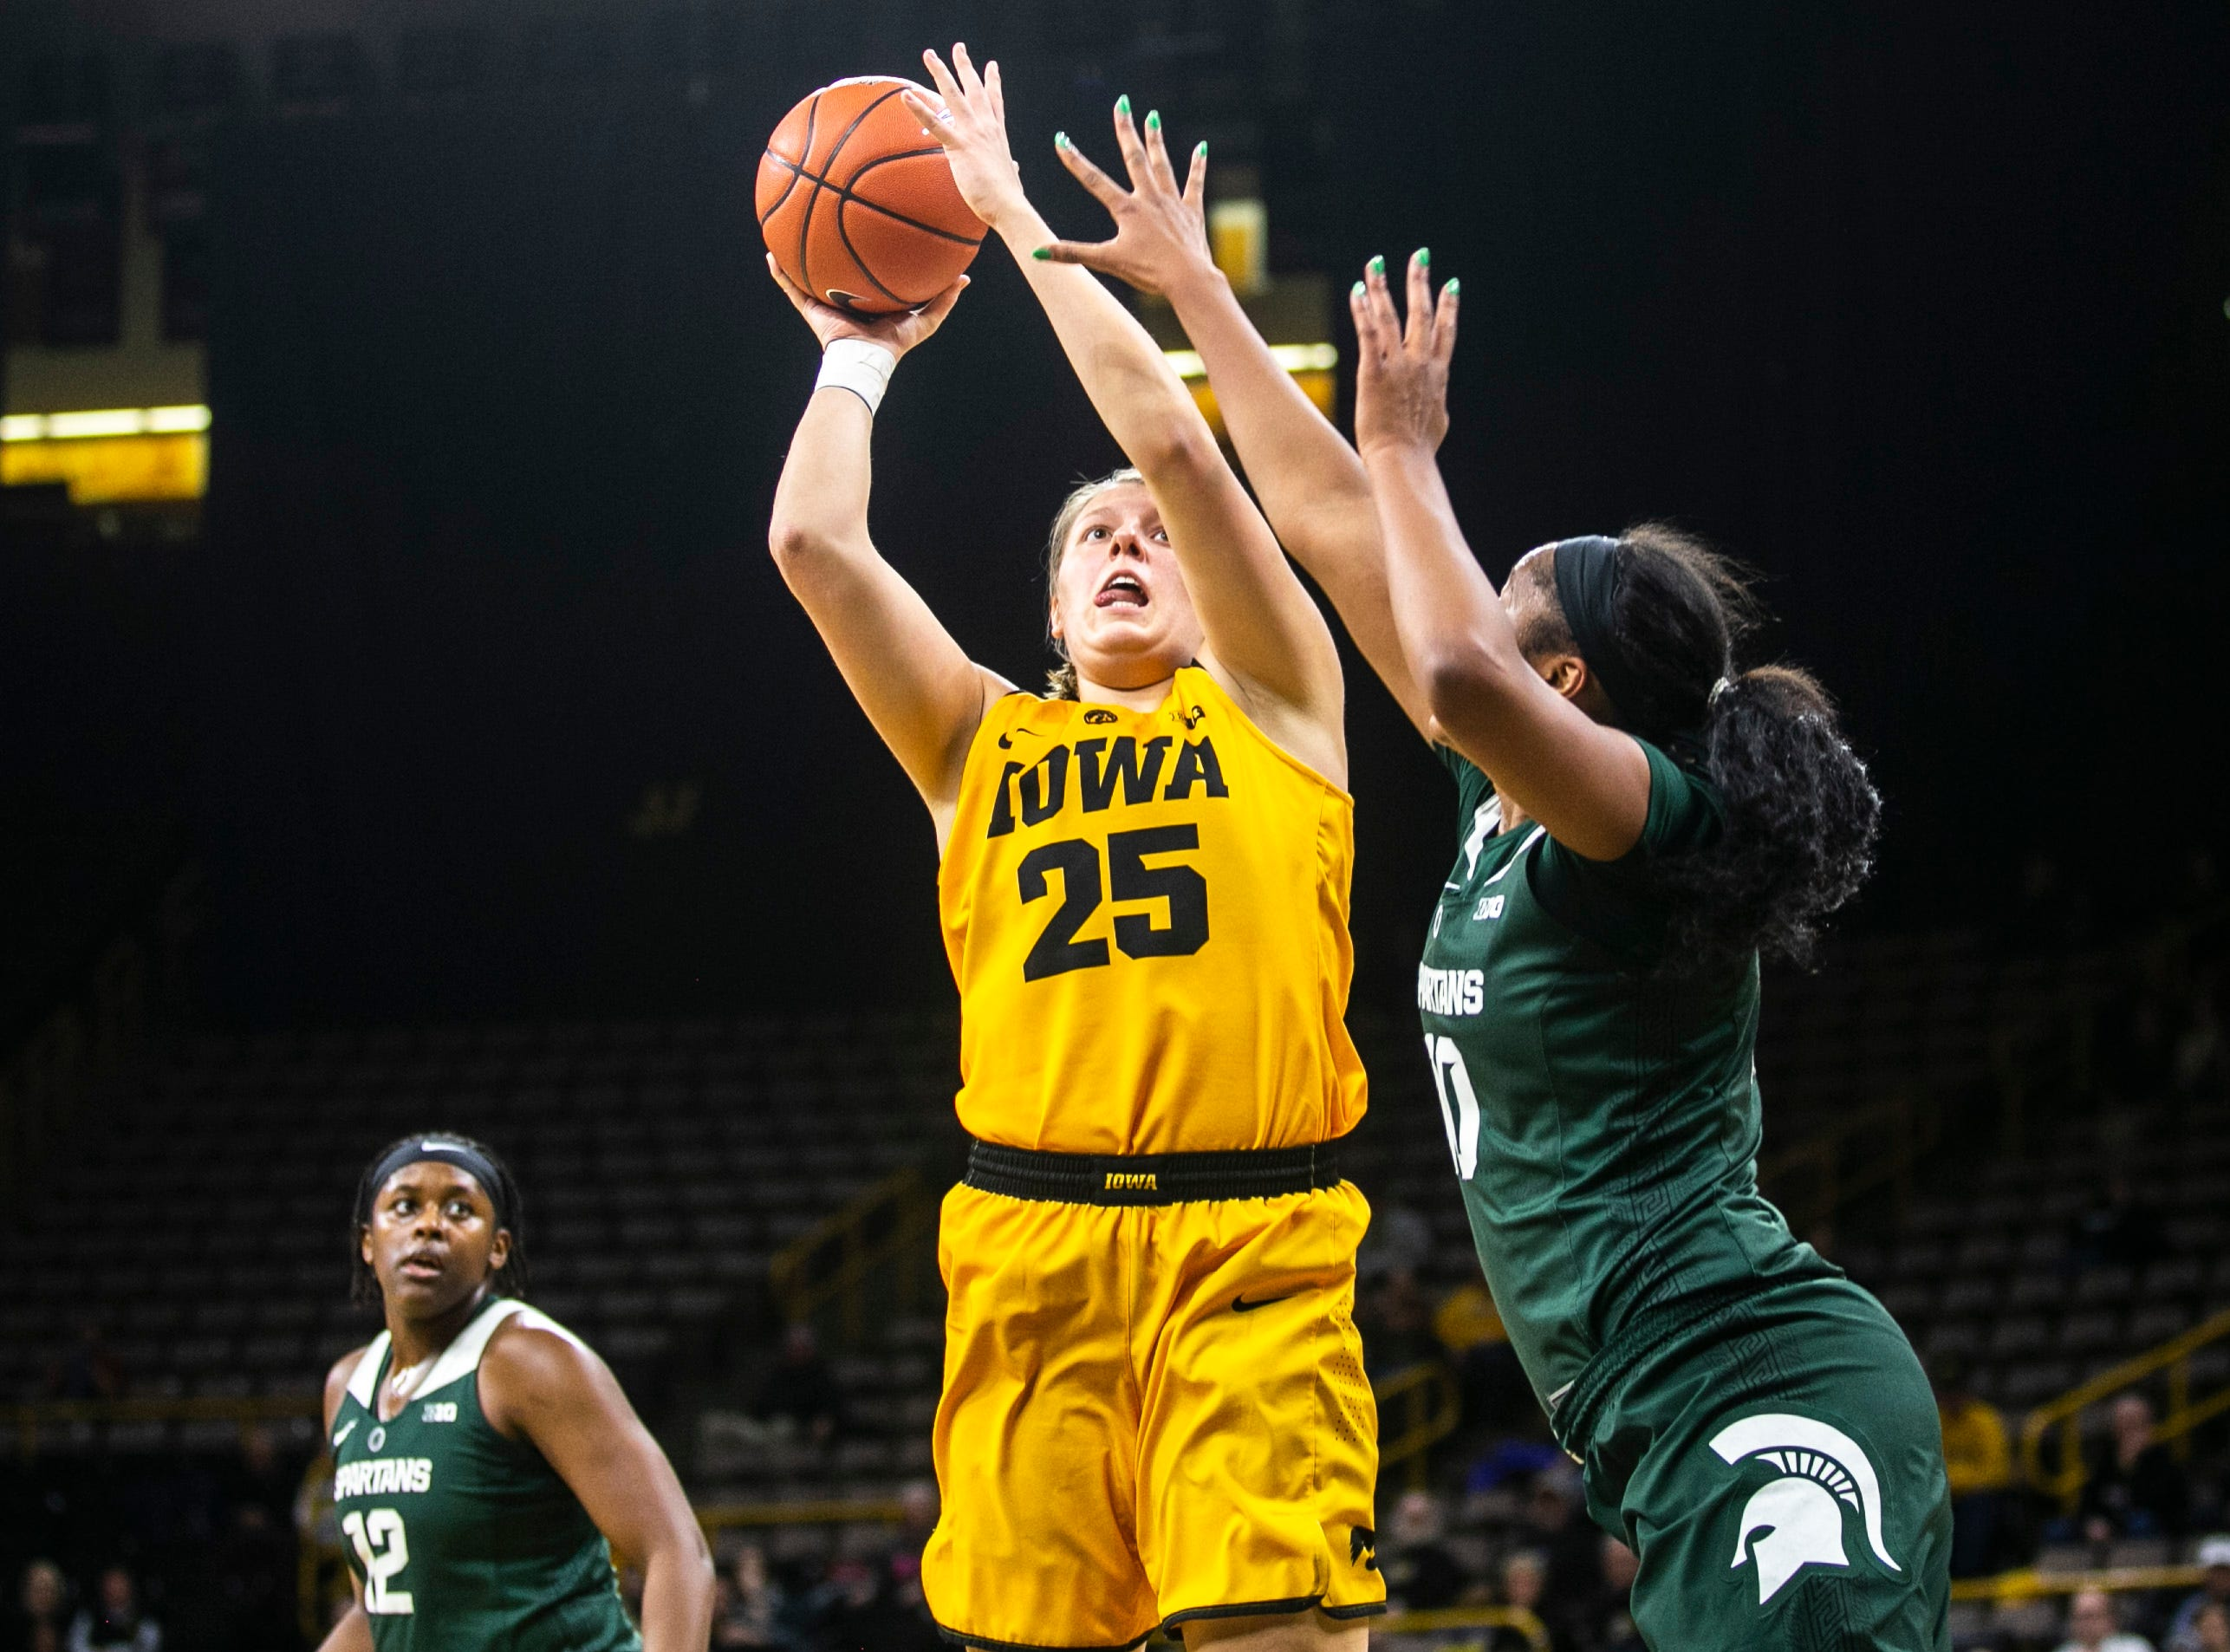 Iowa's Monika Czinano (25) gets defended by Michigan State forward Sidney Cooks (10) during a NCAA Big Ten Conference women's basketball game on Thursday, Feb. 7, 2019 at Carver-Hawkeye Arena in Iowa City, Iowa.